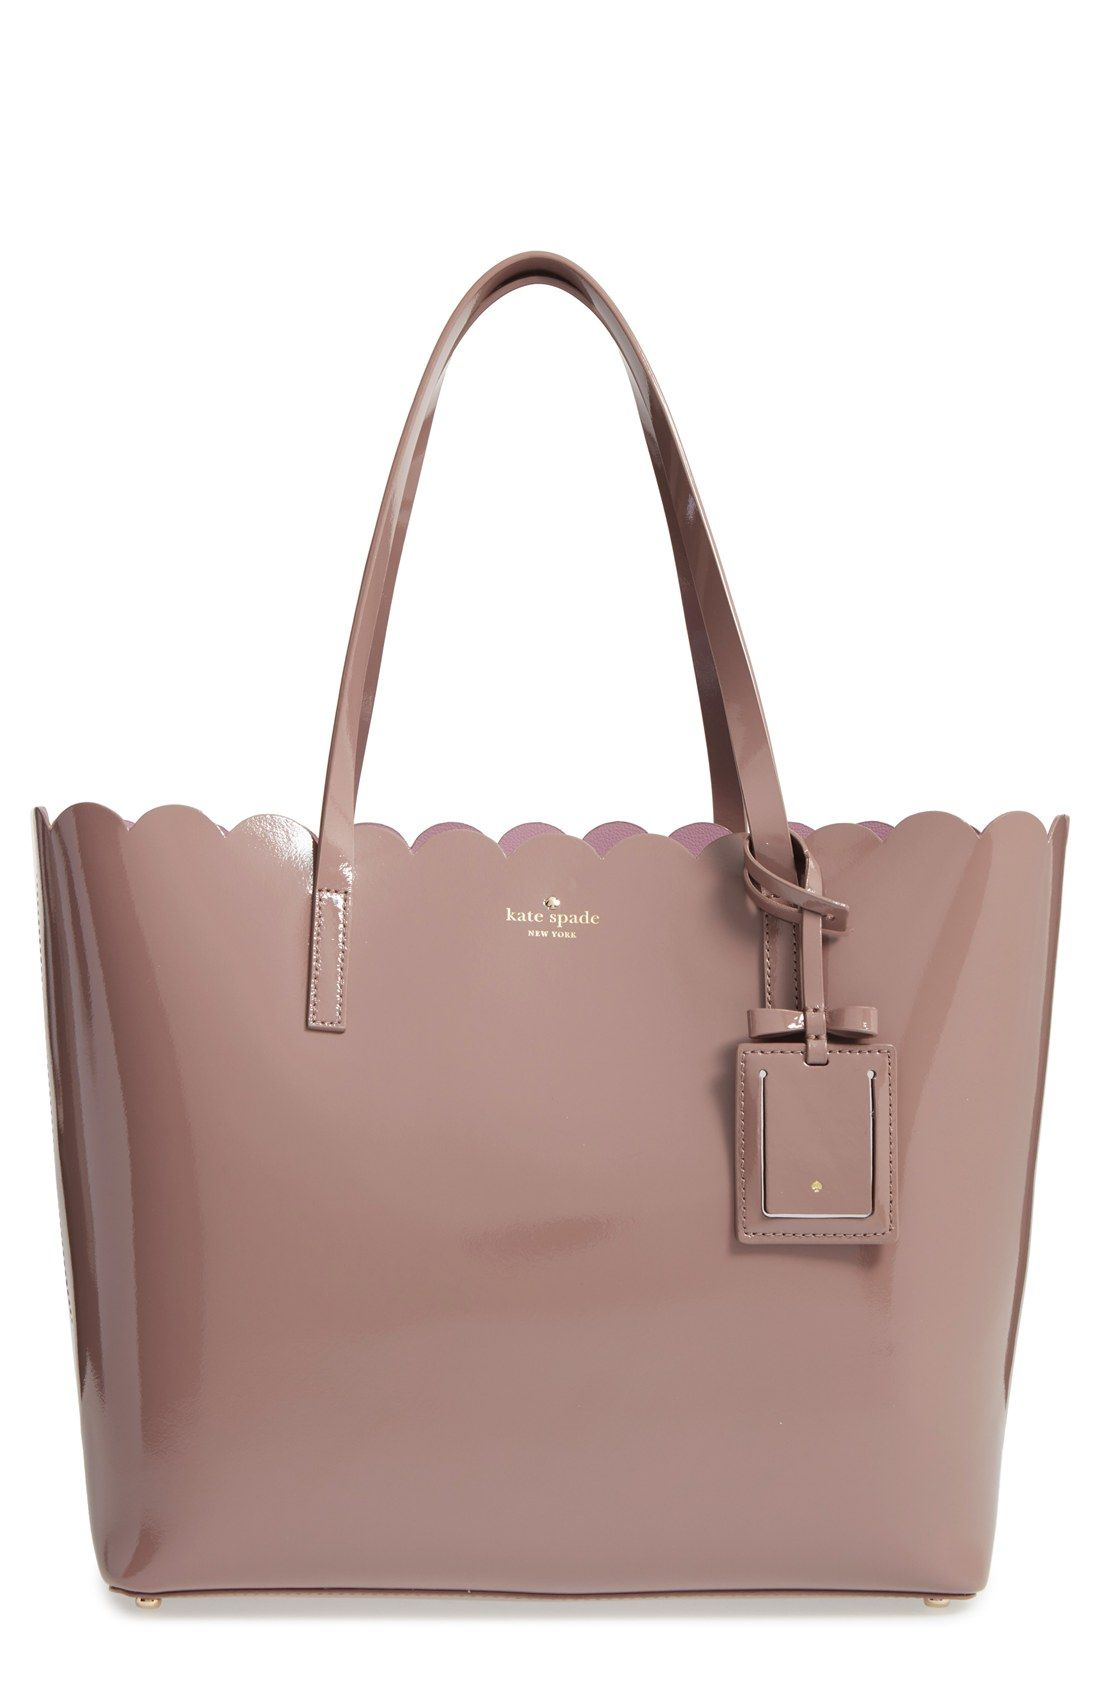 7c497d847ce8 katespade#@$39 on in 2019 | fashion trends | Bags, Kate spade totes ...